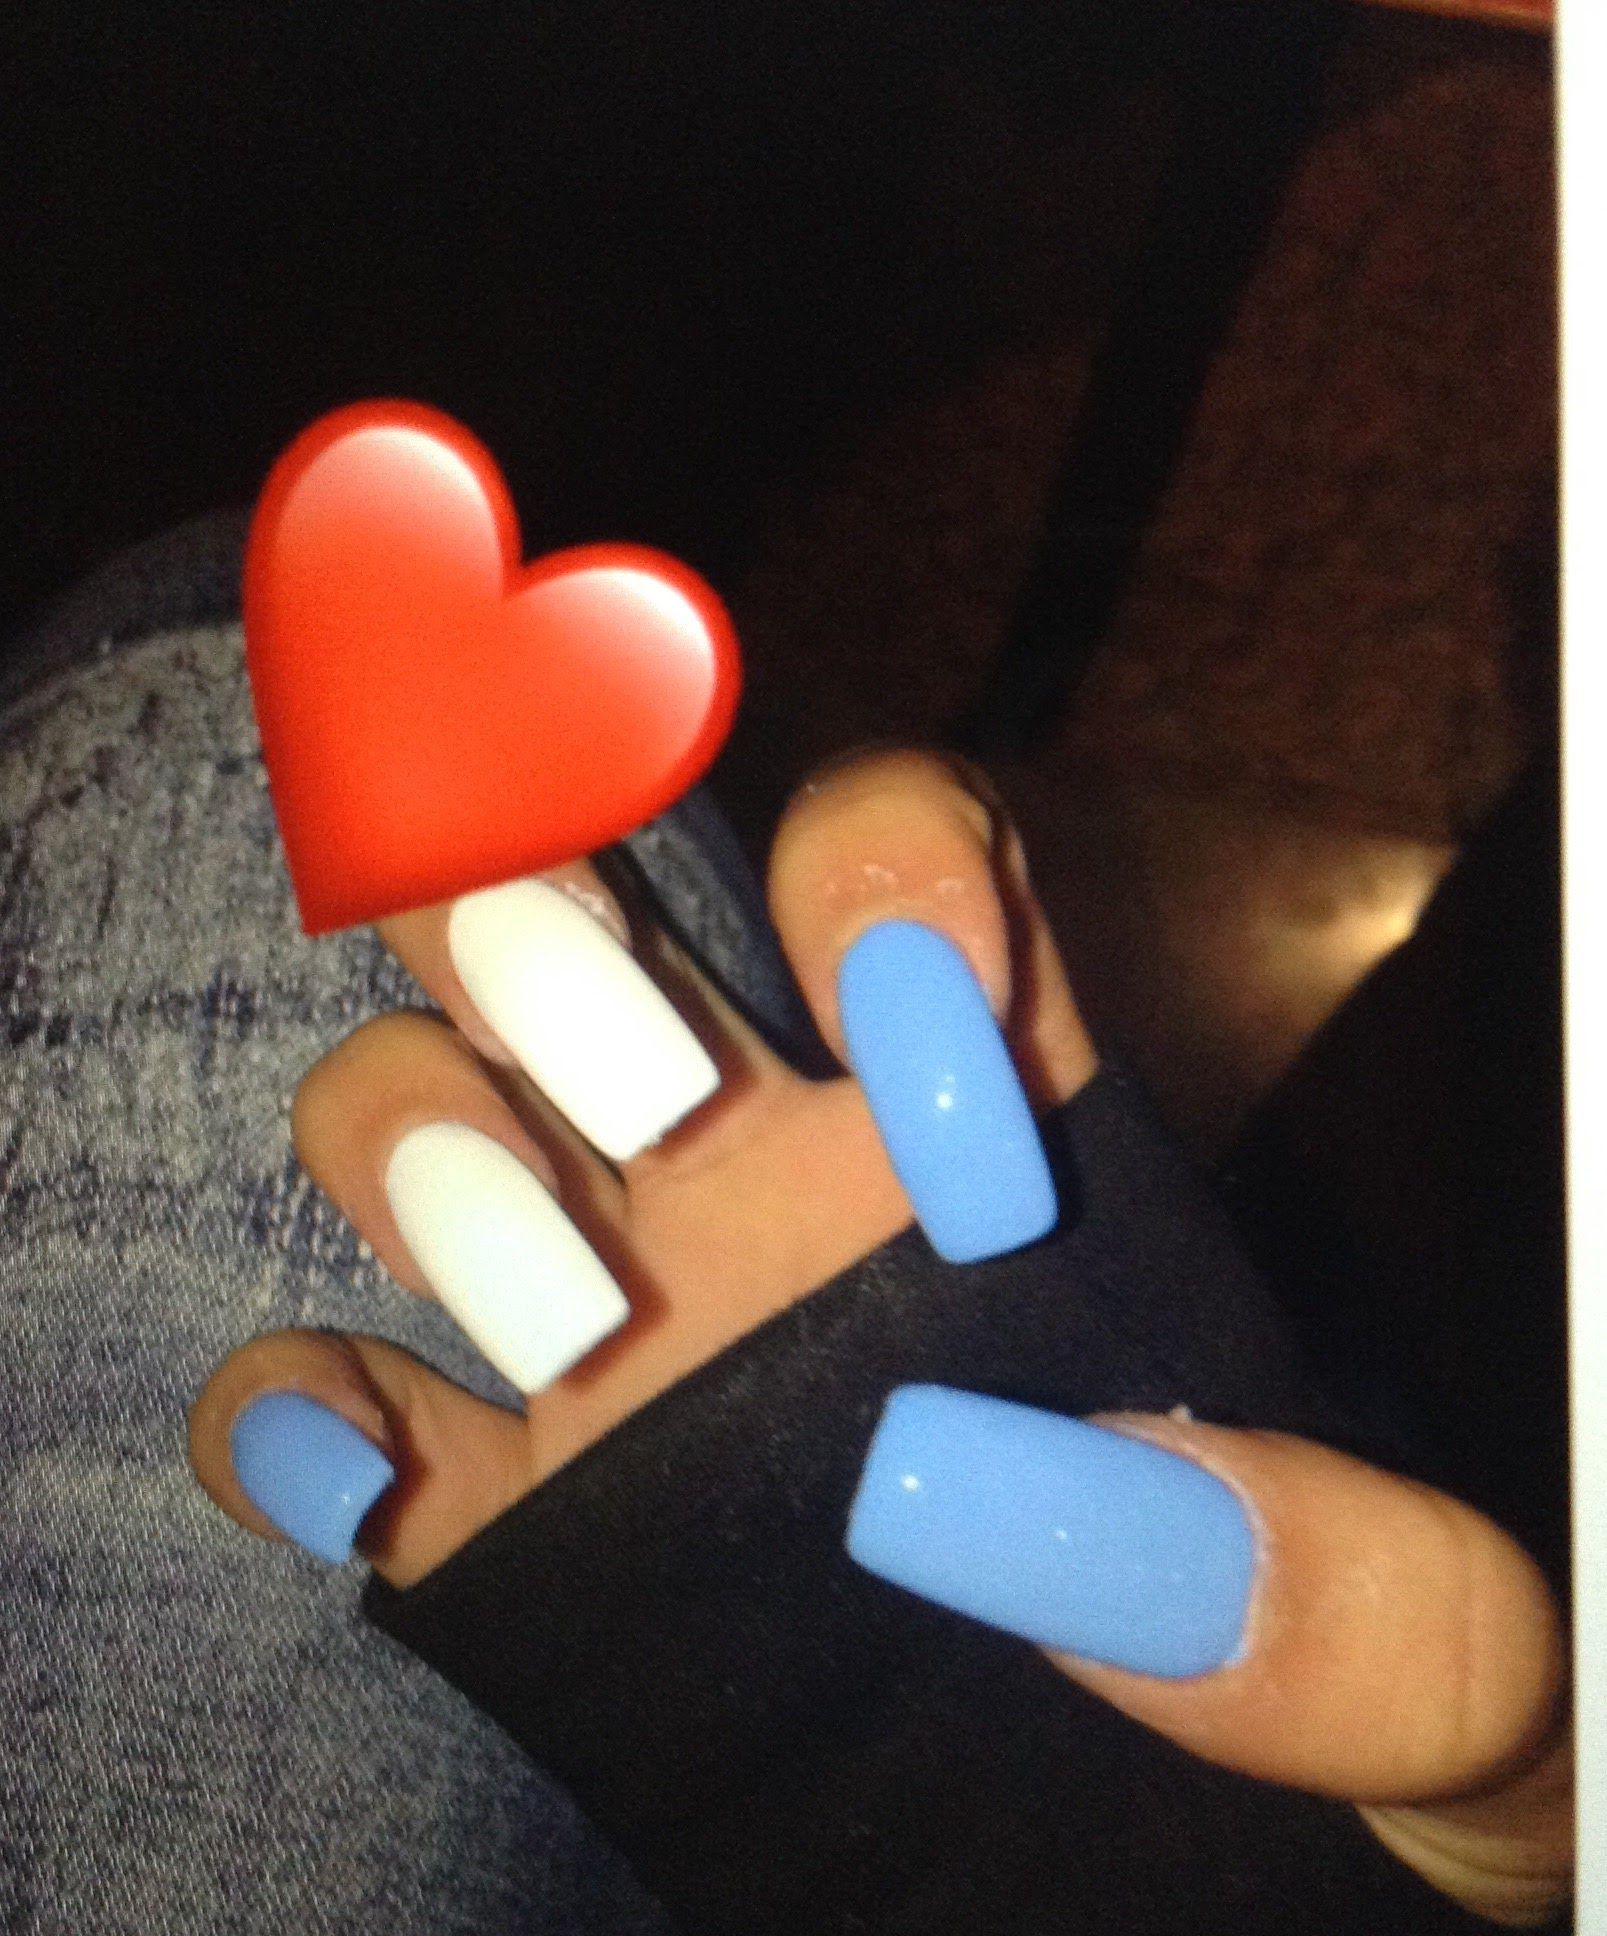 Long Square Acrylic Nails Pinterest Pictures to Pin on Pinterest ...